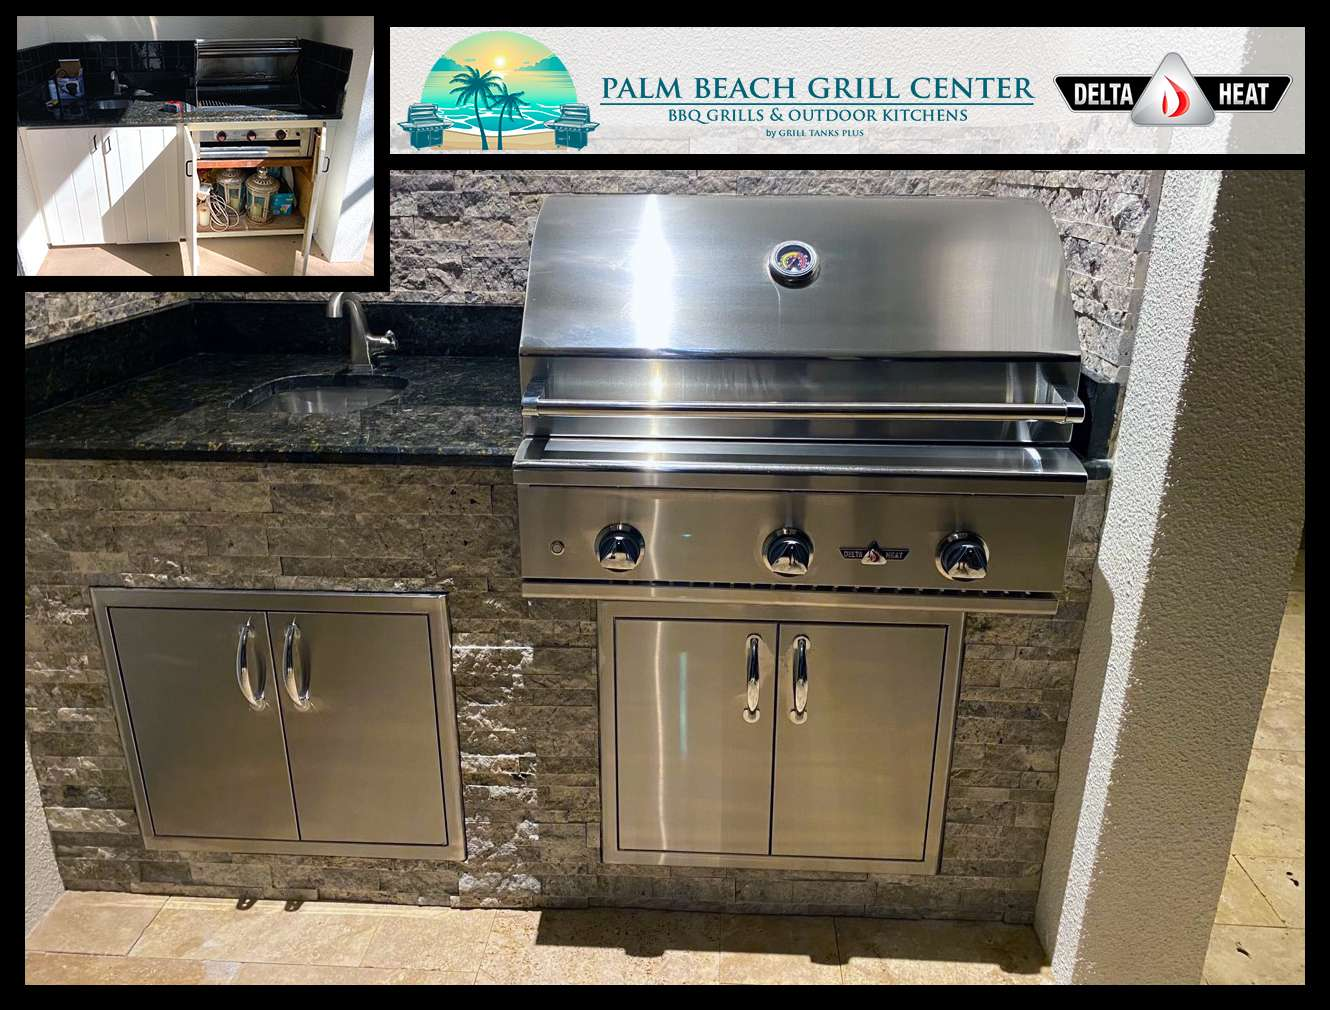 Outdoor Kitchen for Sale - Palm Beach Grill Center